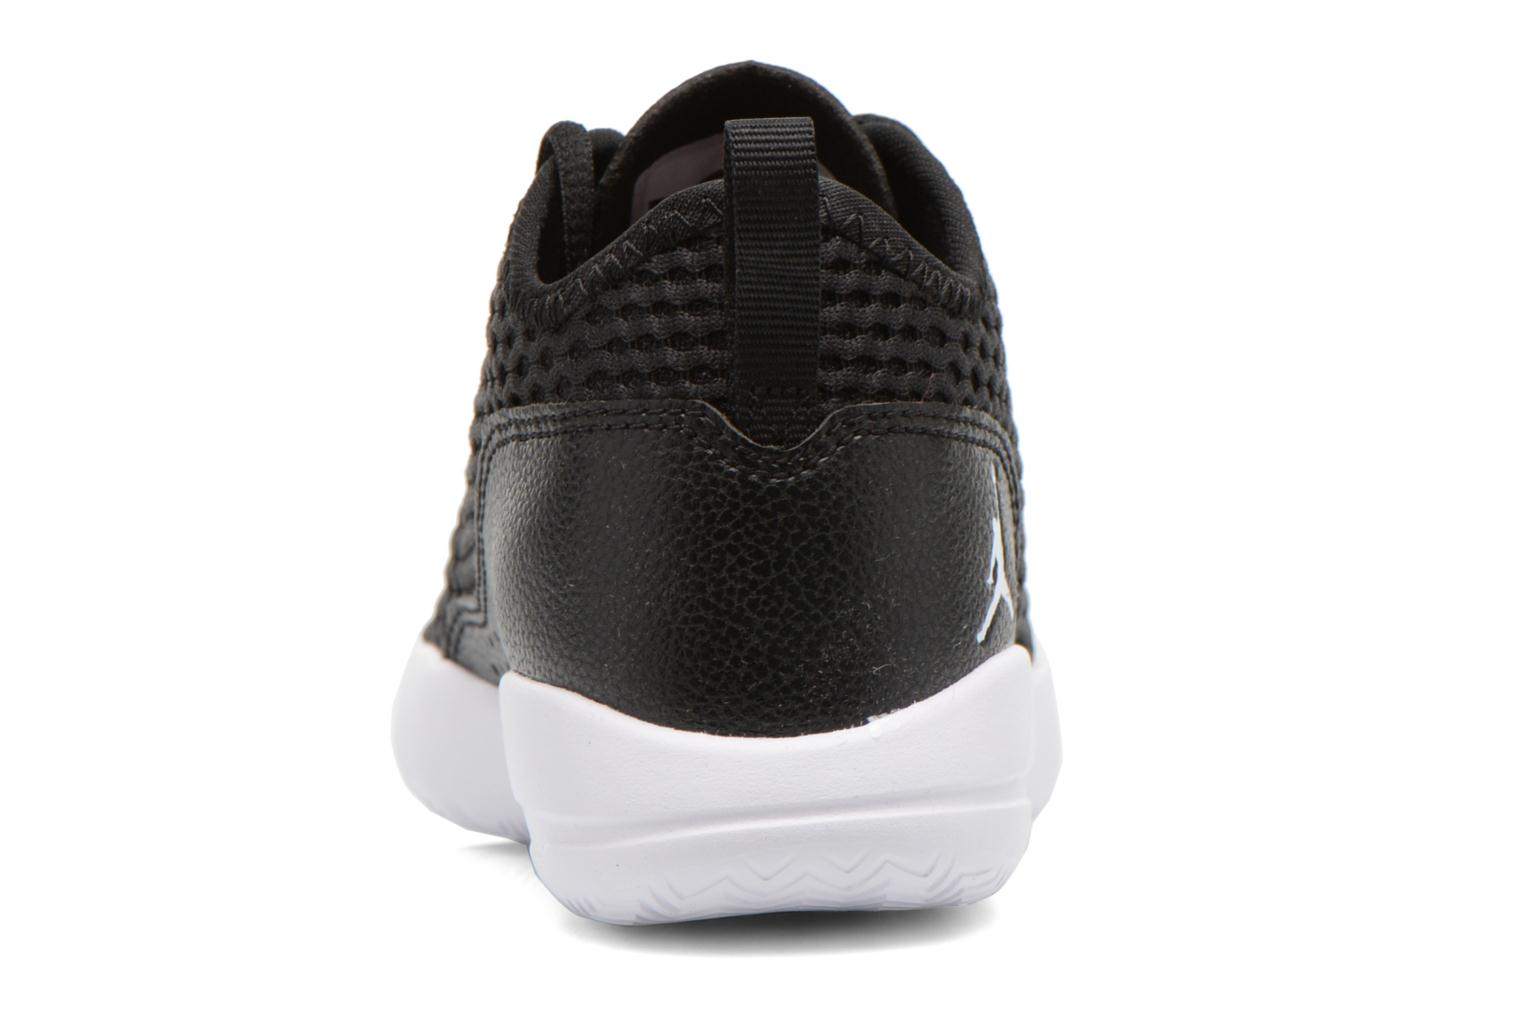 Jordan Reveal Bp BlackWhite-Black-White